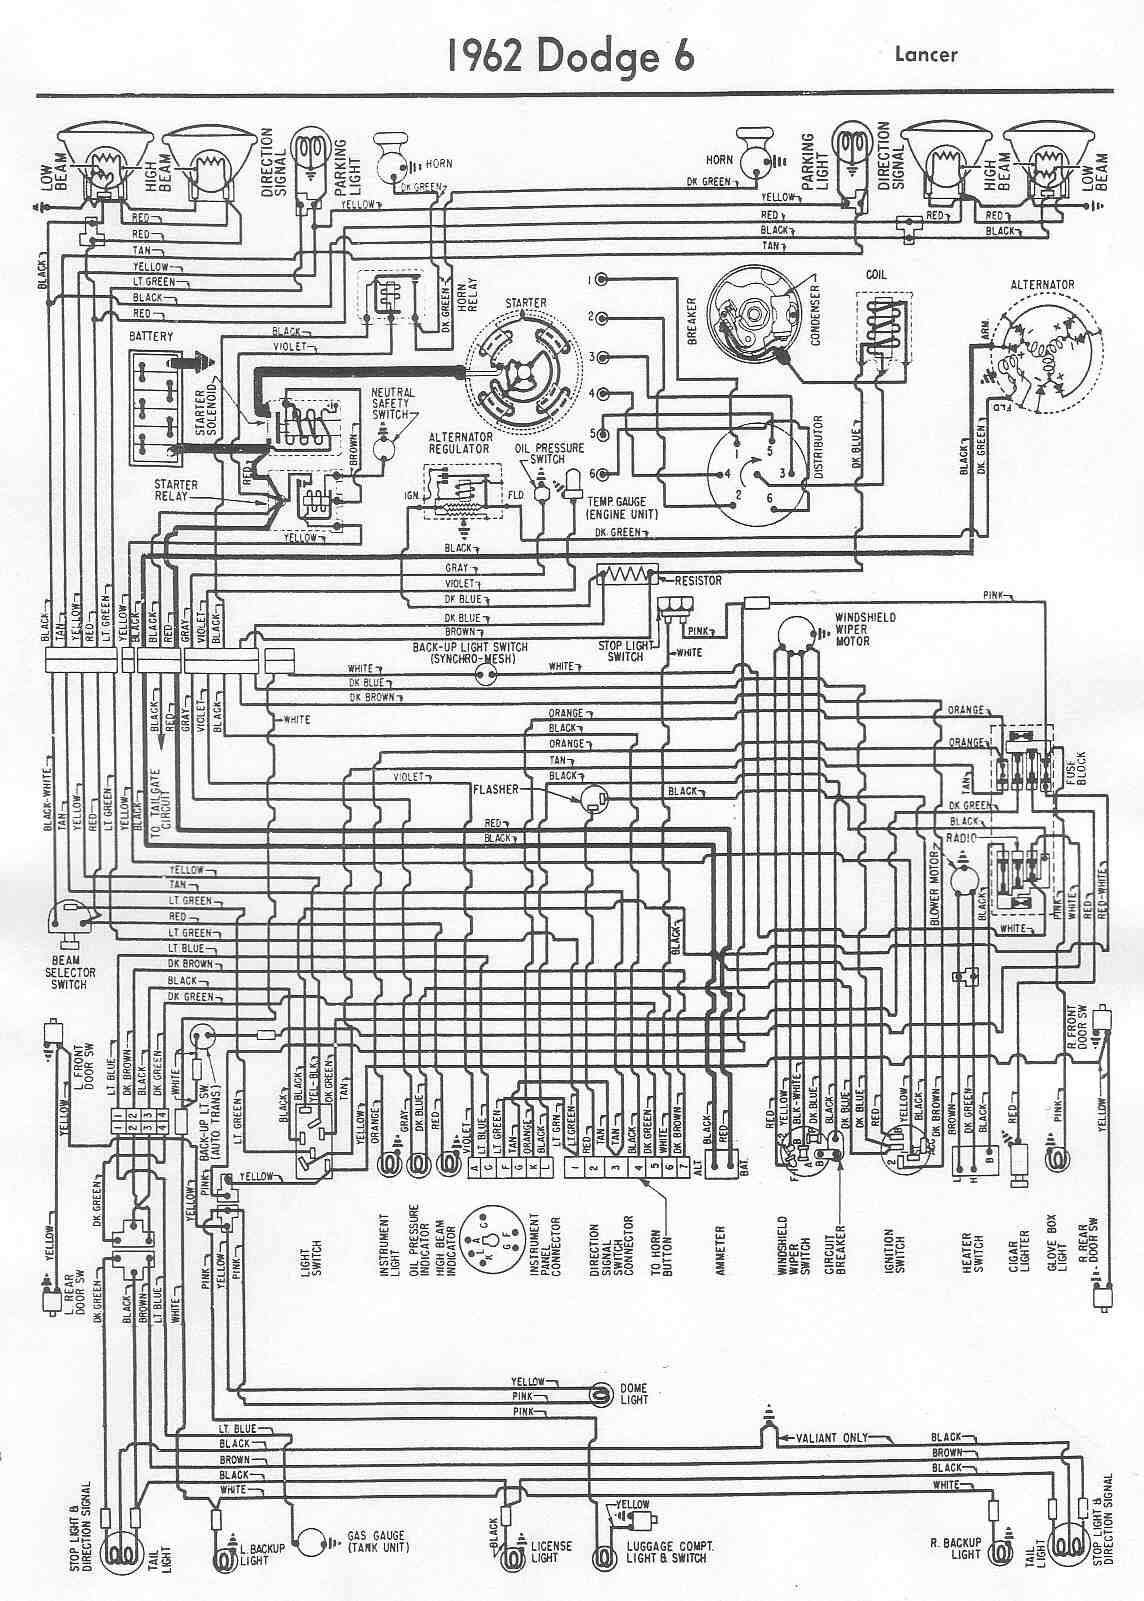 1968 Dodge Charger Ac Wiring Diagram Wiring Diagrams Name Name Miglioribanche It